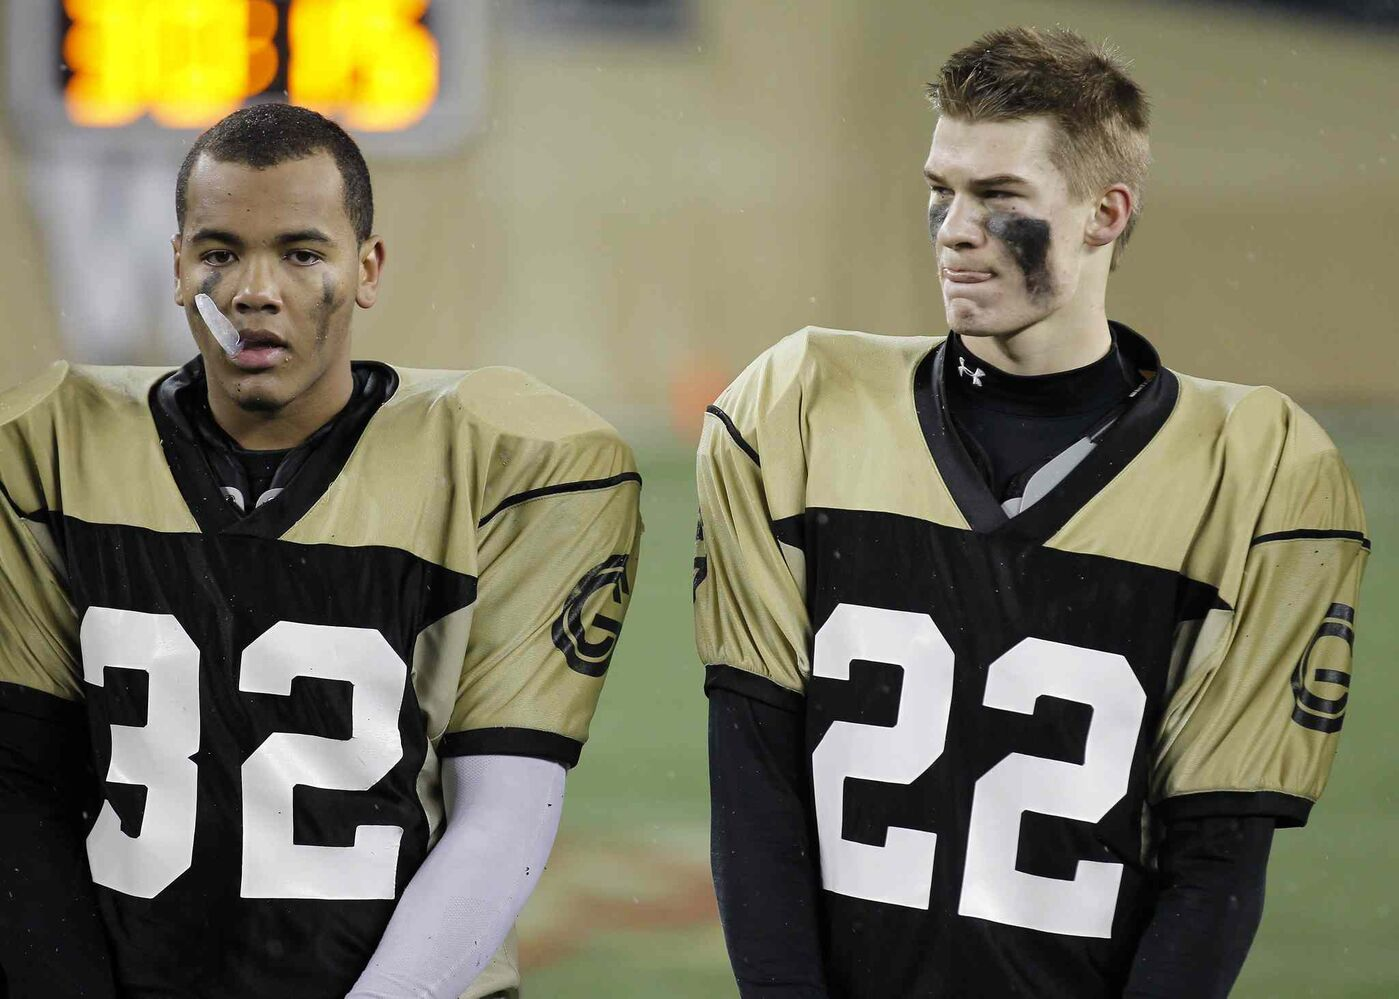 Garden City Gophers Nathan Collings and Keenan Koswin stand dejected after losing to the St.Paul's Crusaders. (Trevor Hagan / Winnipeg Free Press)